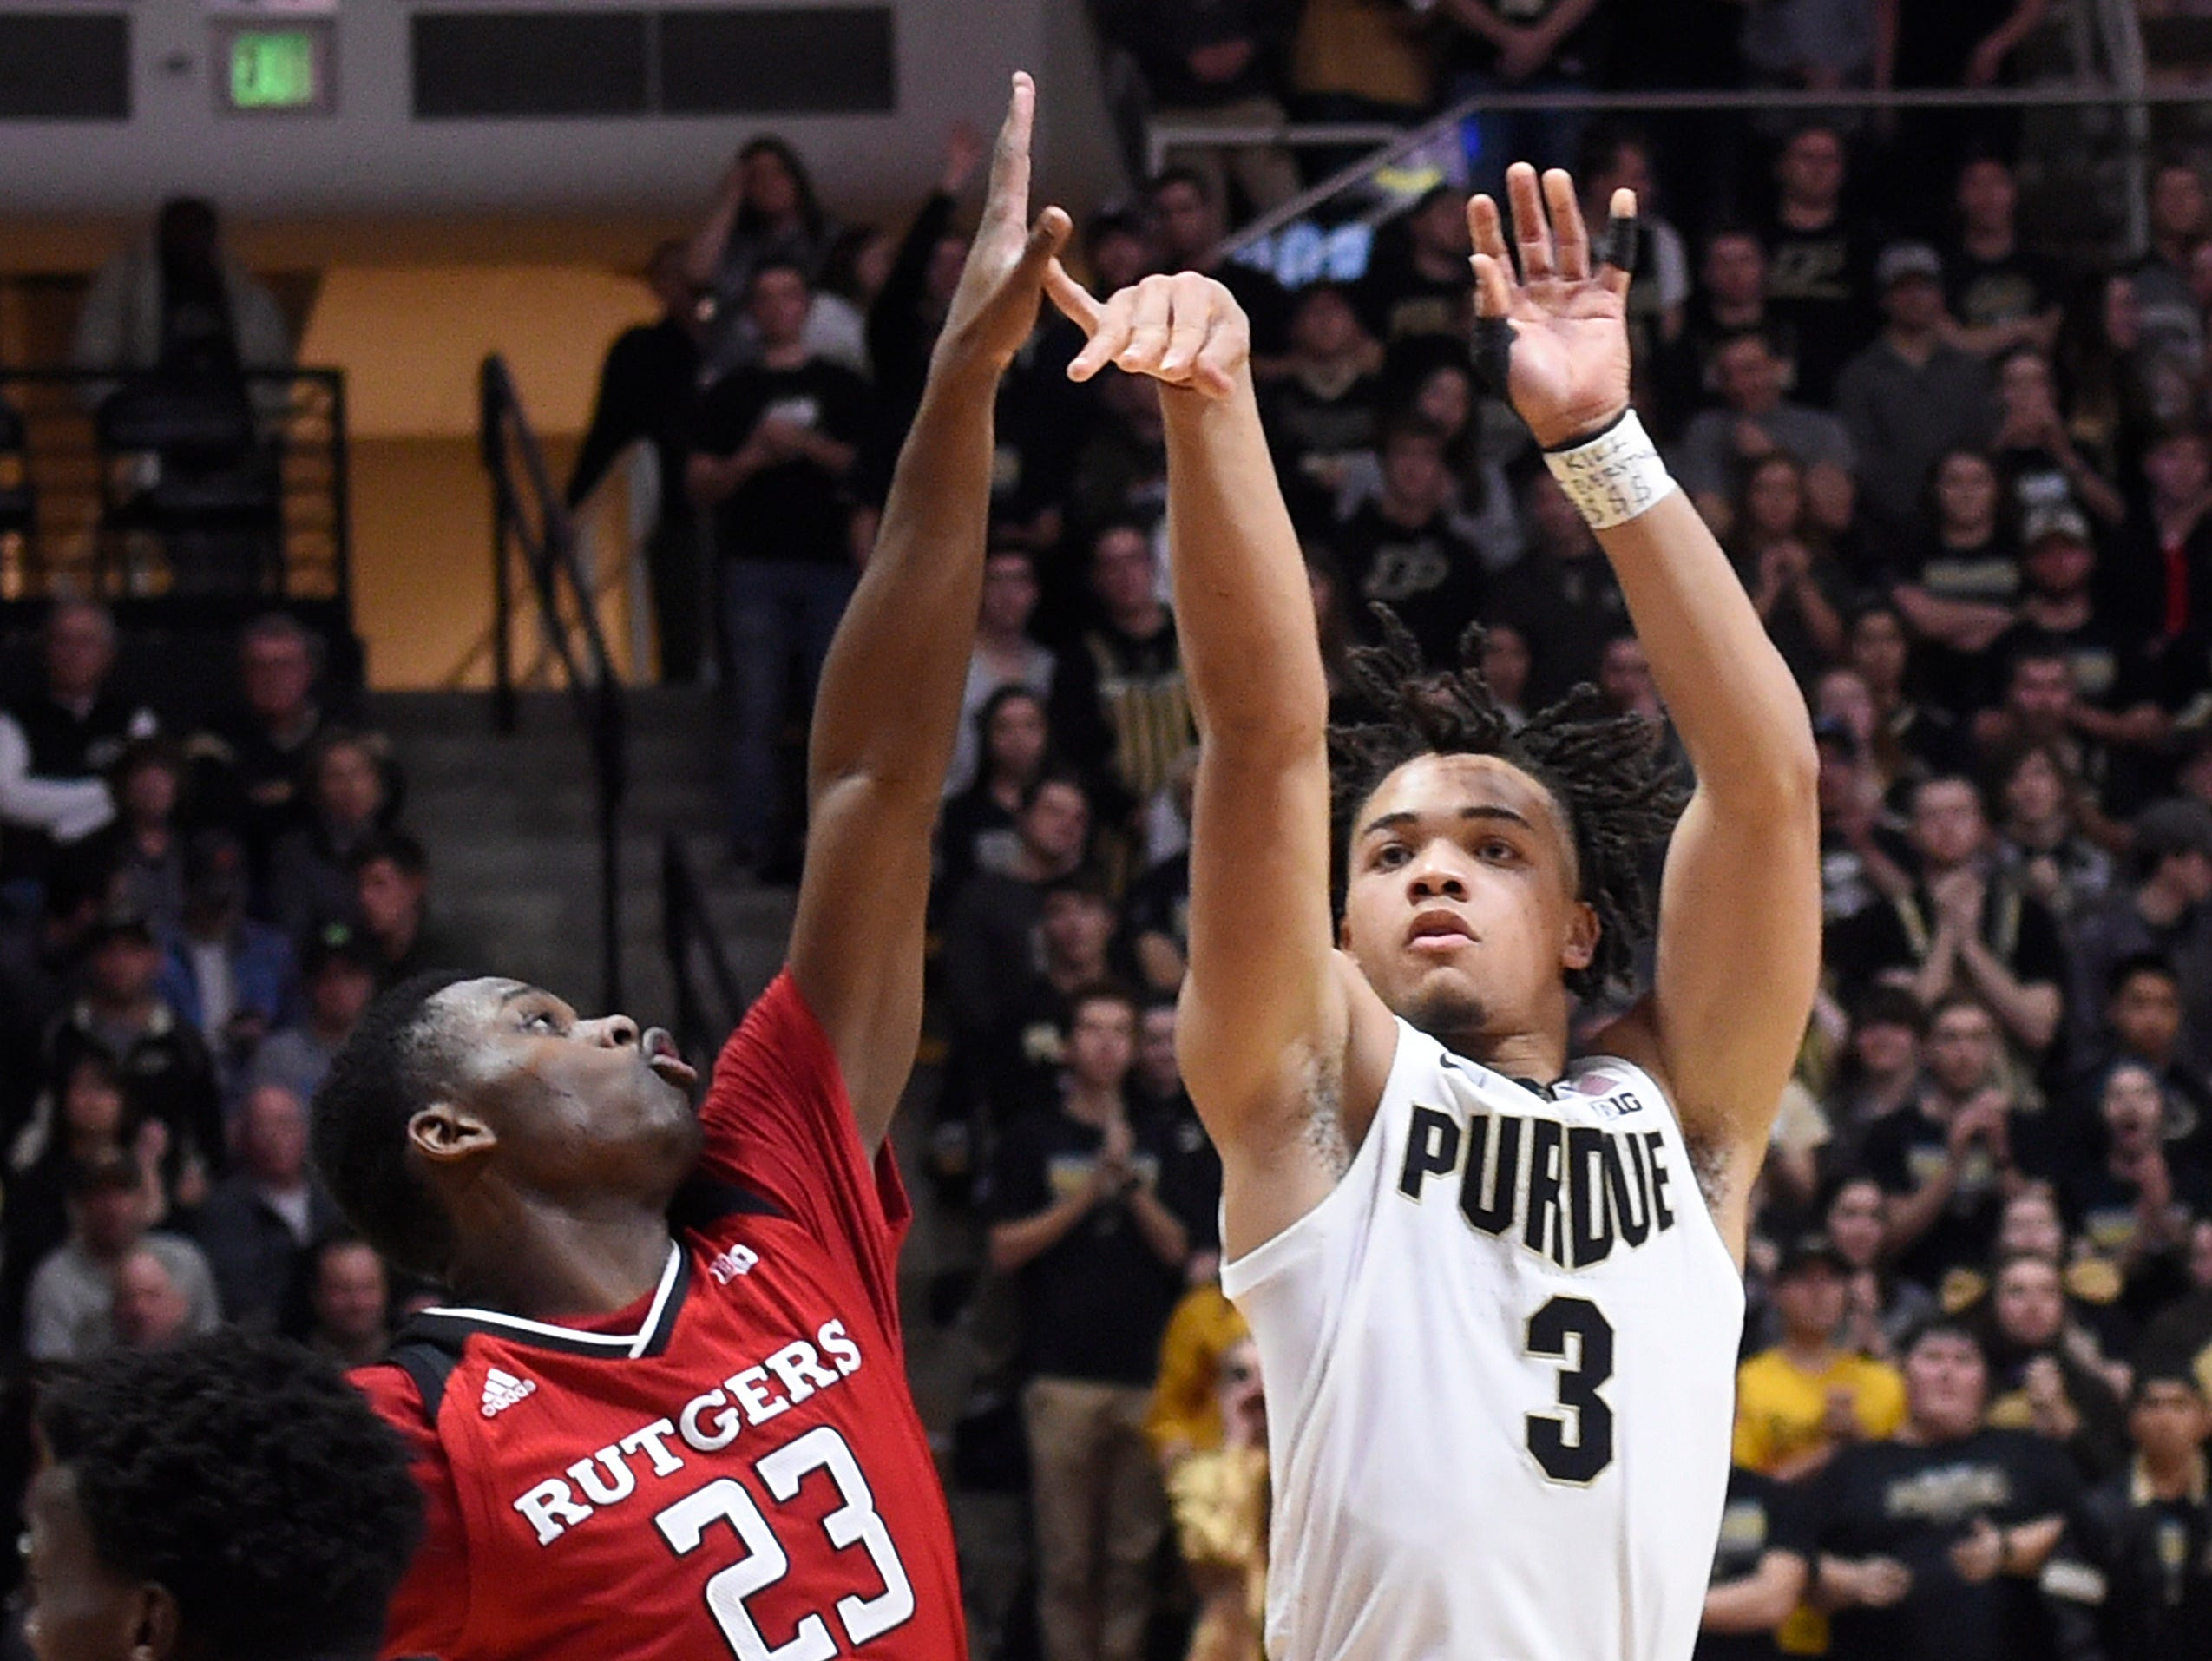 Jan 15, 2019; West Lafayette, IN, USA; Purdue Boilermakers guard Carsen Edwards (3) shoots over the outstretched arm of Rutgers Scarlet Knights guard Montez Mathis (23) in the 2nd half at Mackey Arena. Mandatory Credit: Sandra Dukes-USA TODAY Sports